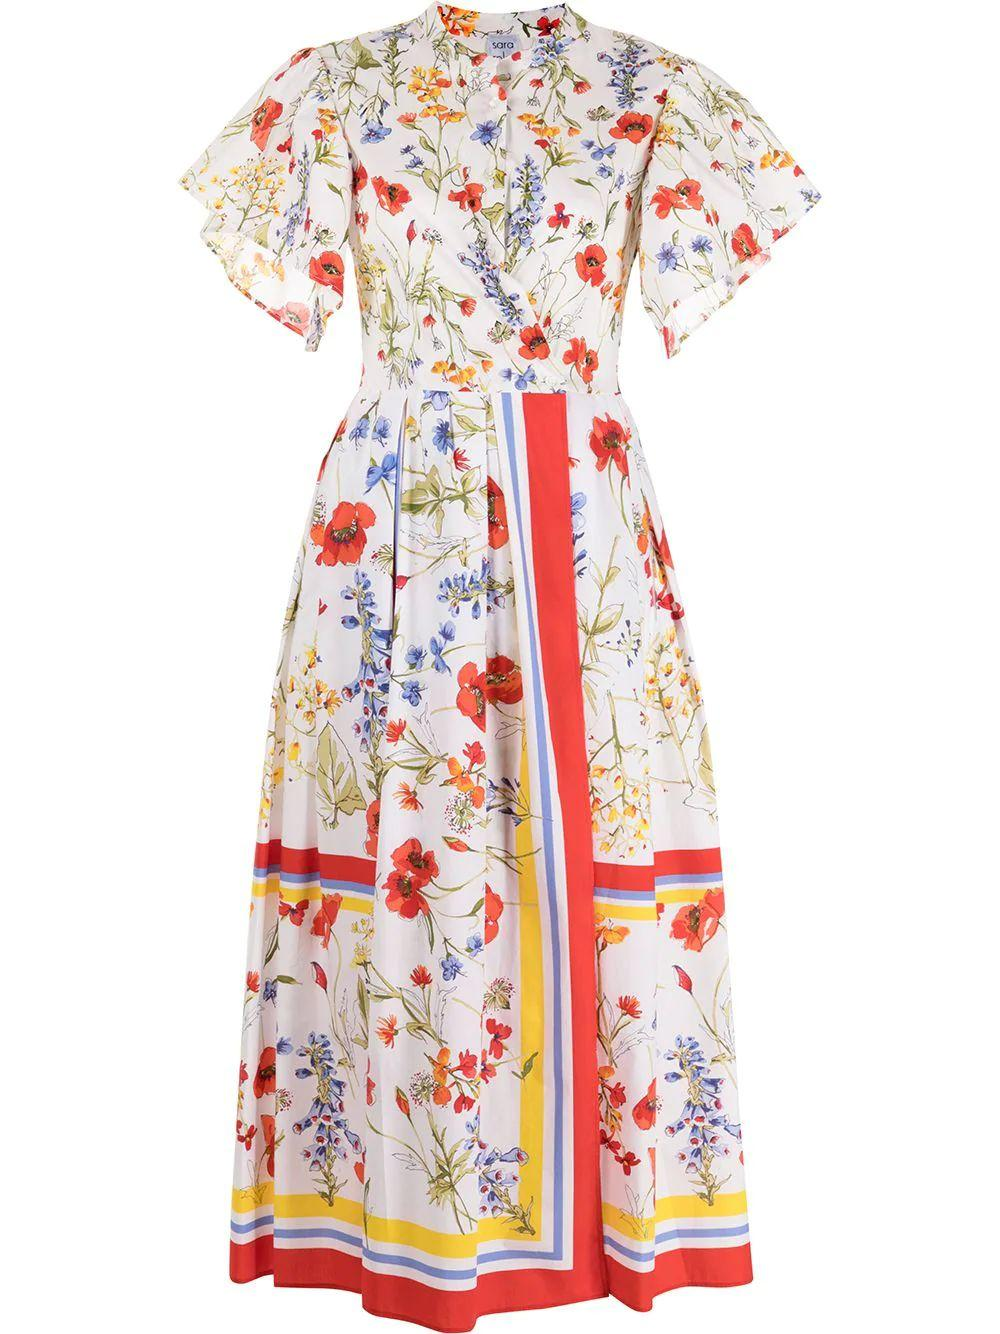 Fiore Wild Floral Shirt Dress